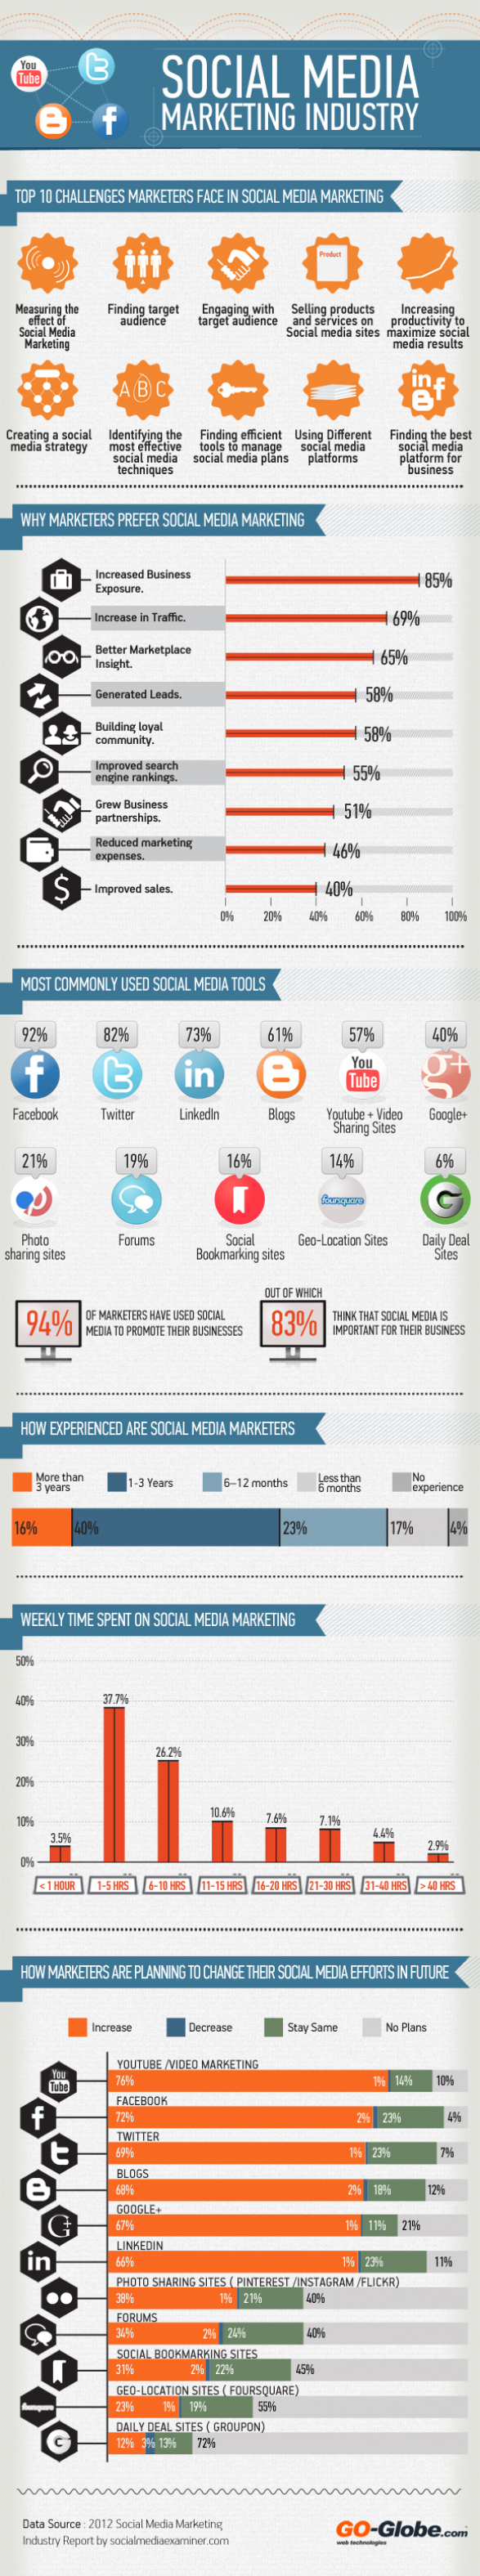 Social Media Marketing Industry